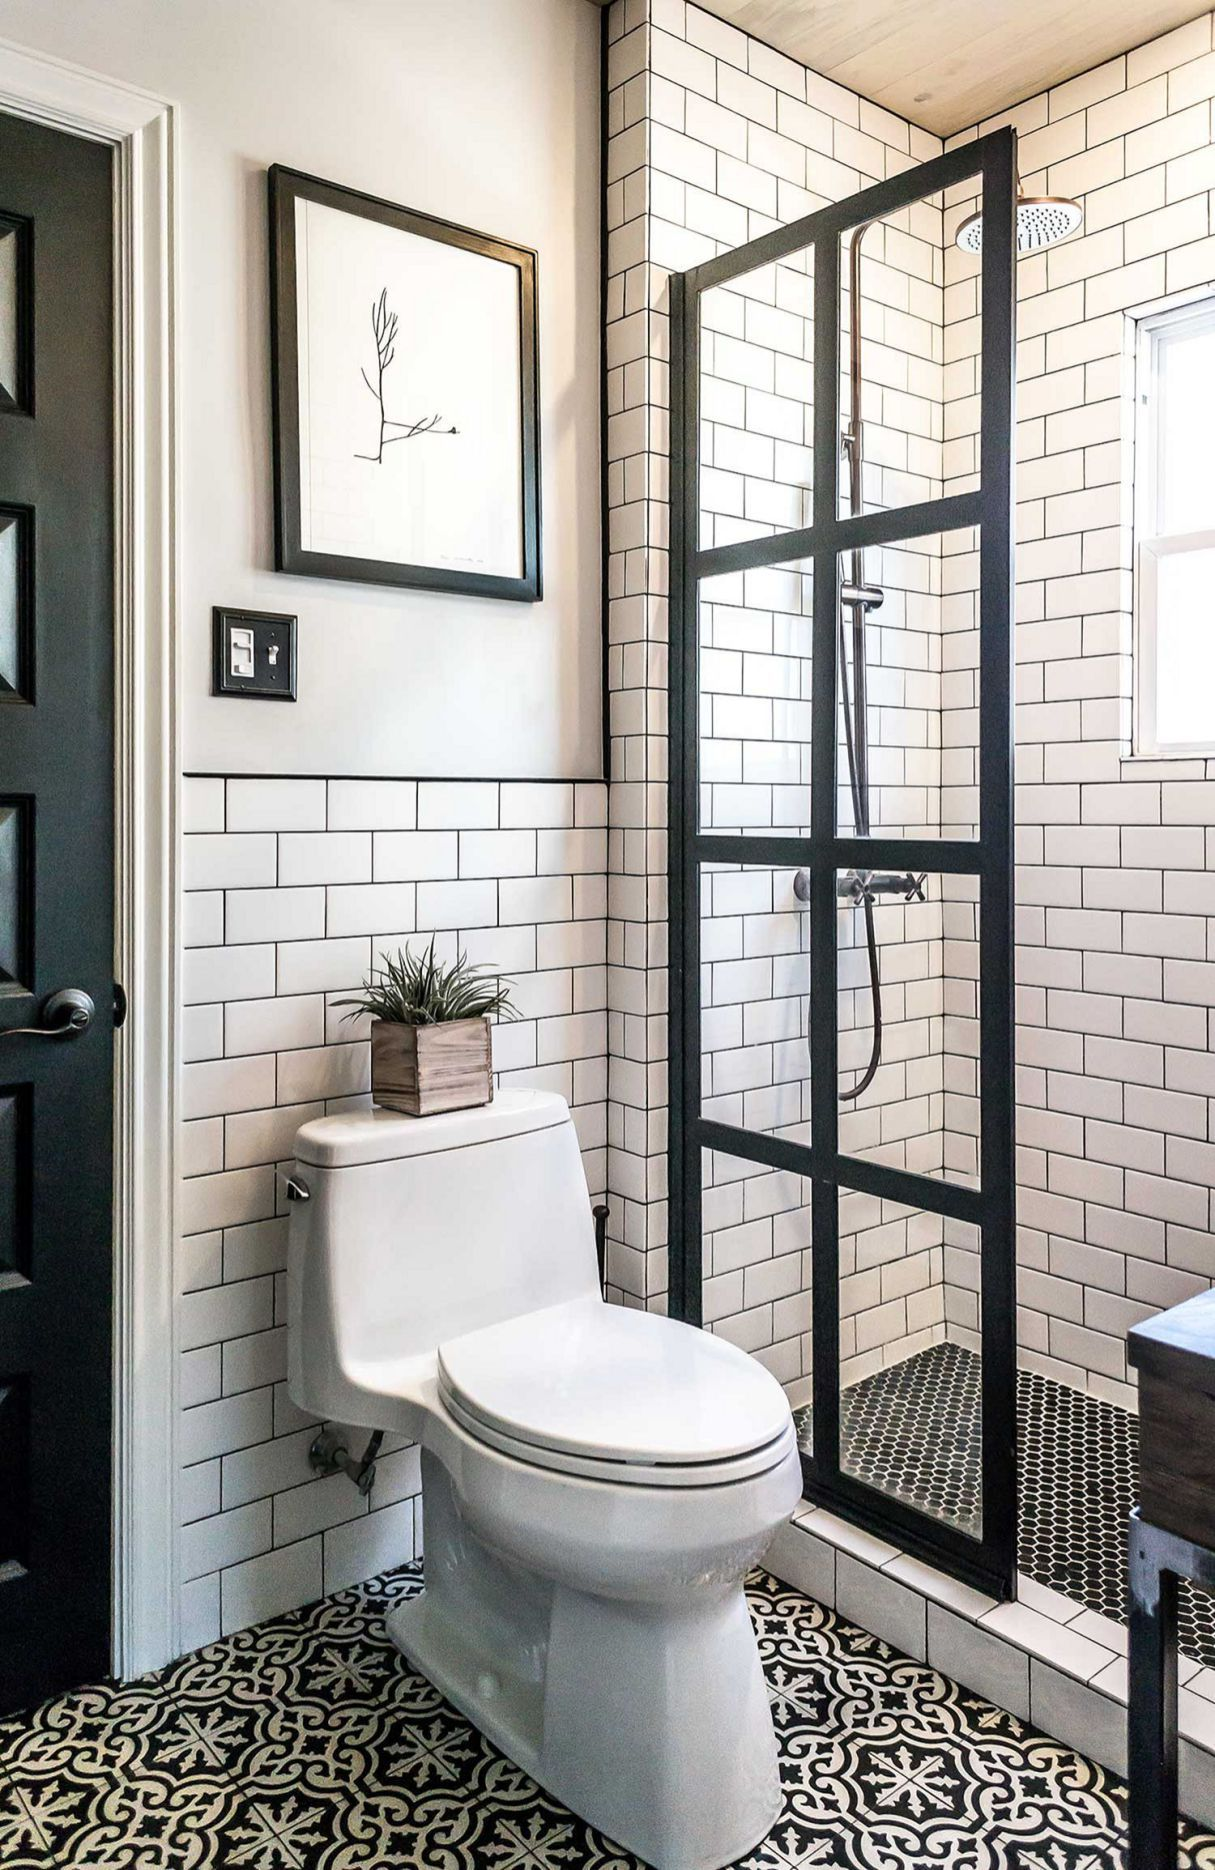 115 Extraordinary Small Bathroom Designs For Small Space | Bathrooms ...